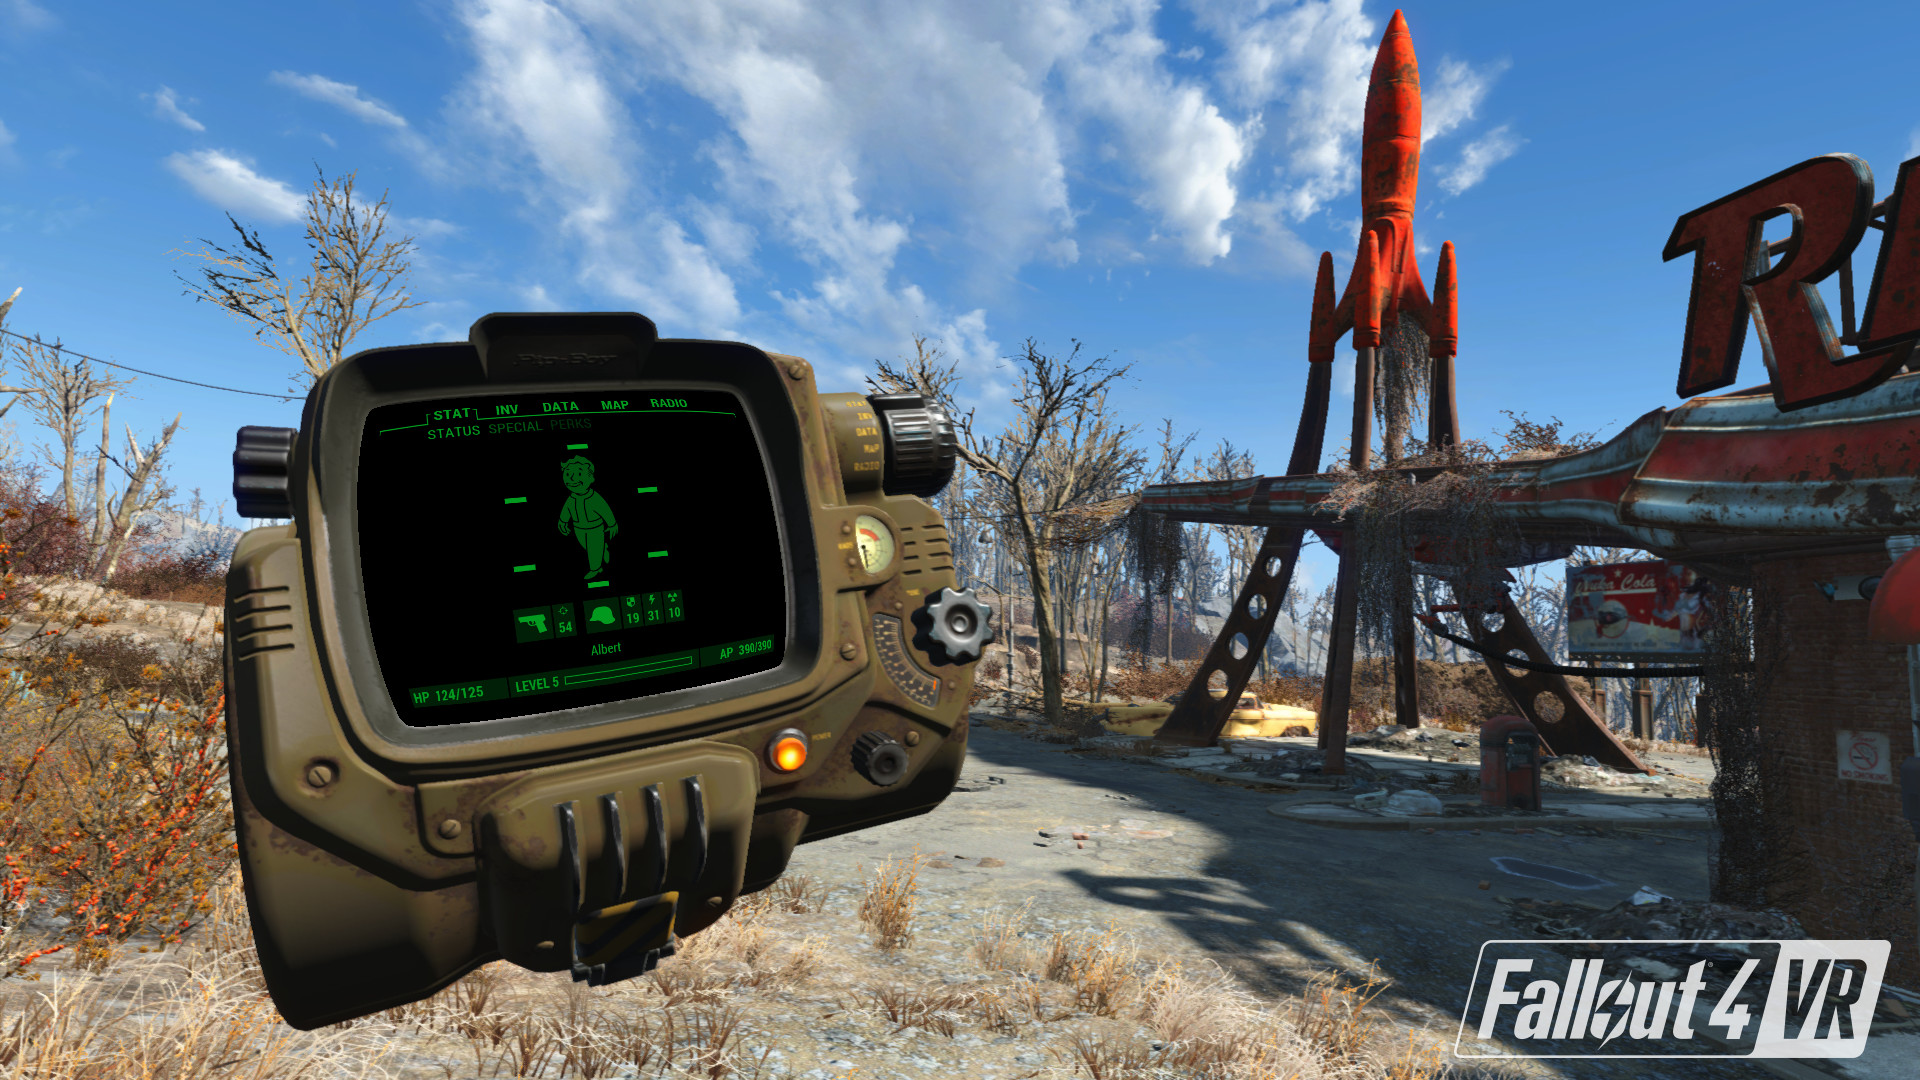 Fallout 4 VR Works On Oculus Rift With Stable SteamVR Build